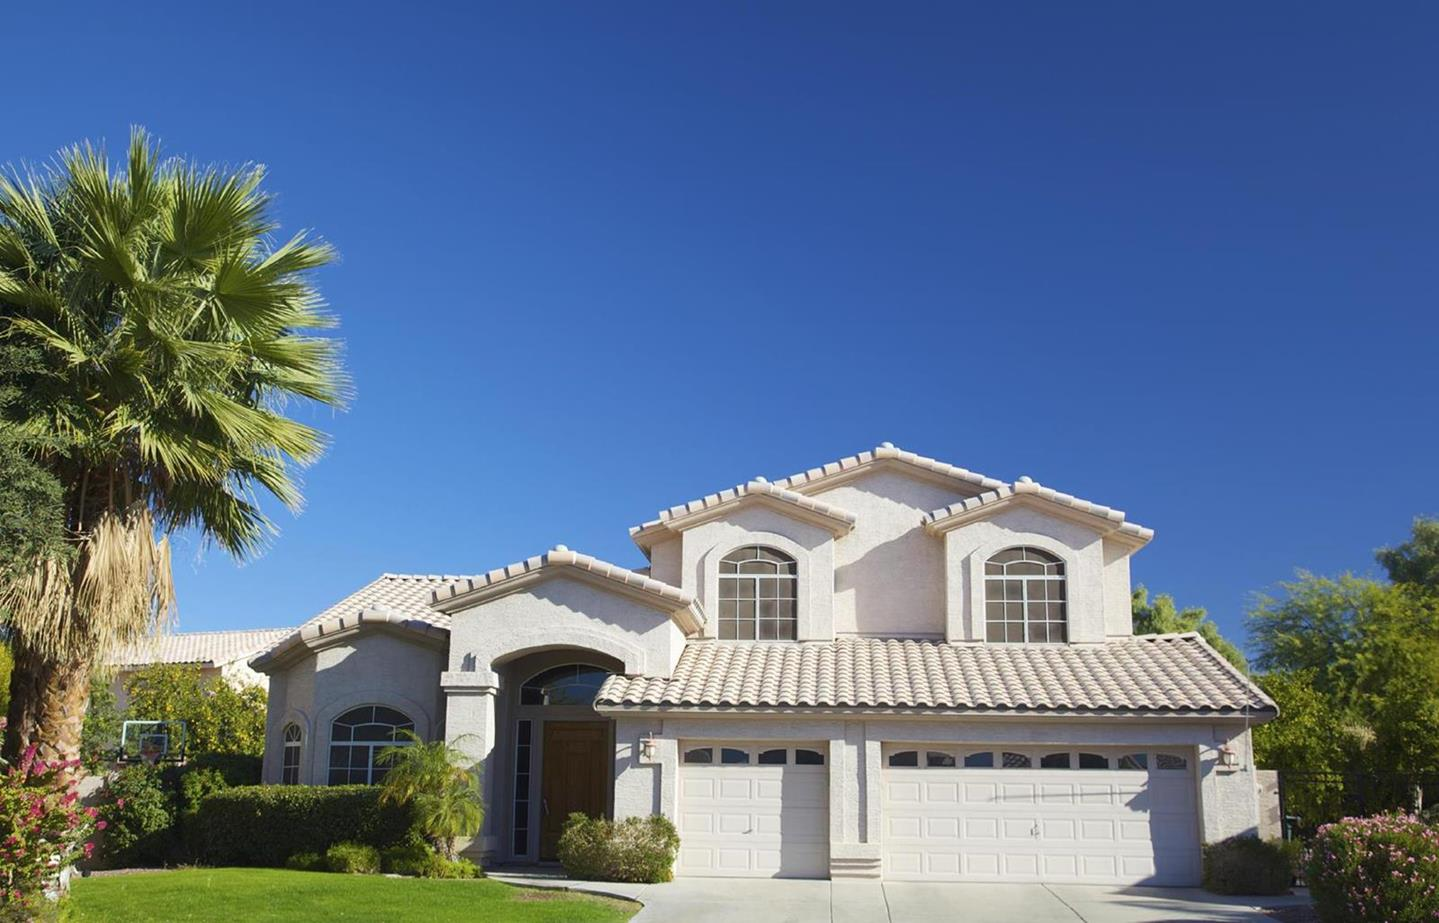 Mesa Roofing Services Mesa Roofer Specializing In Roof